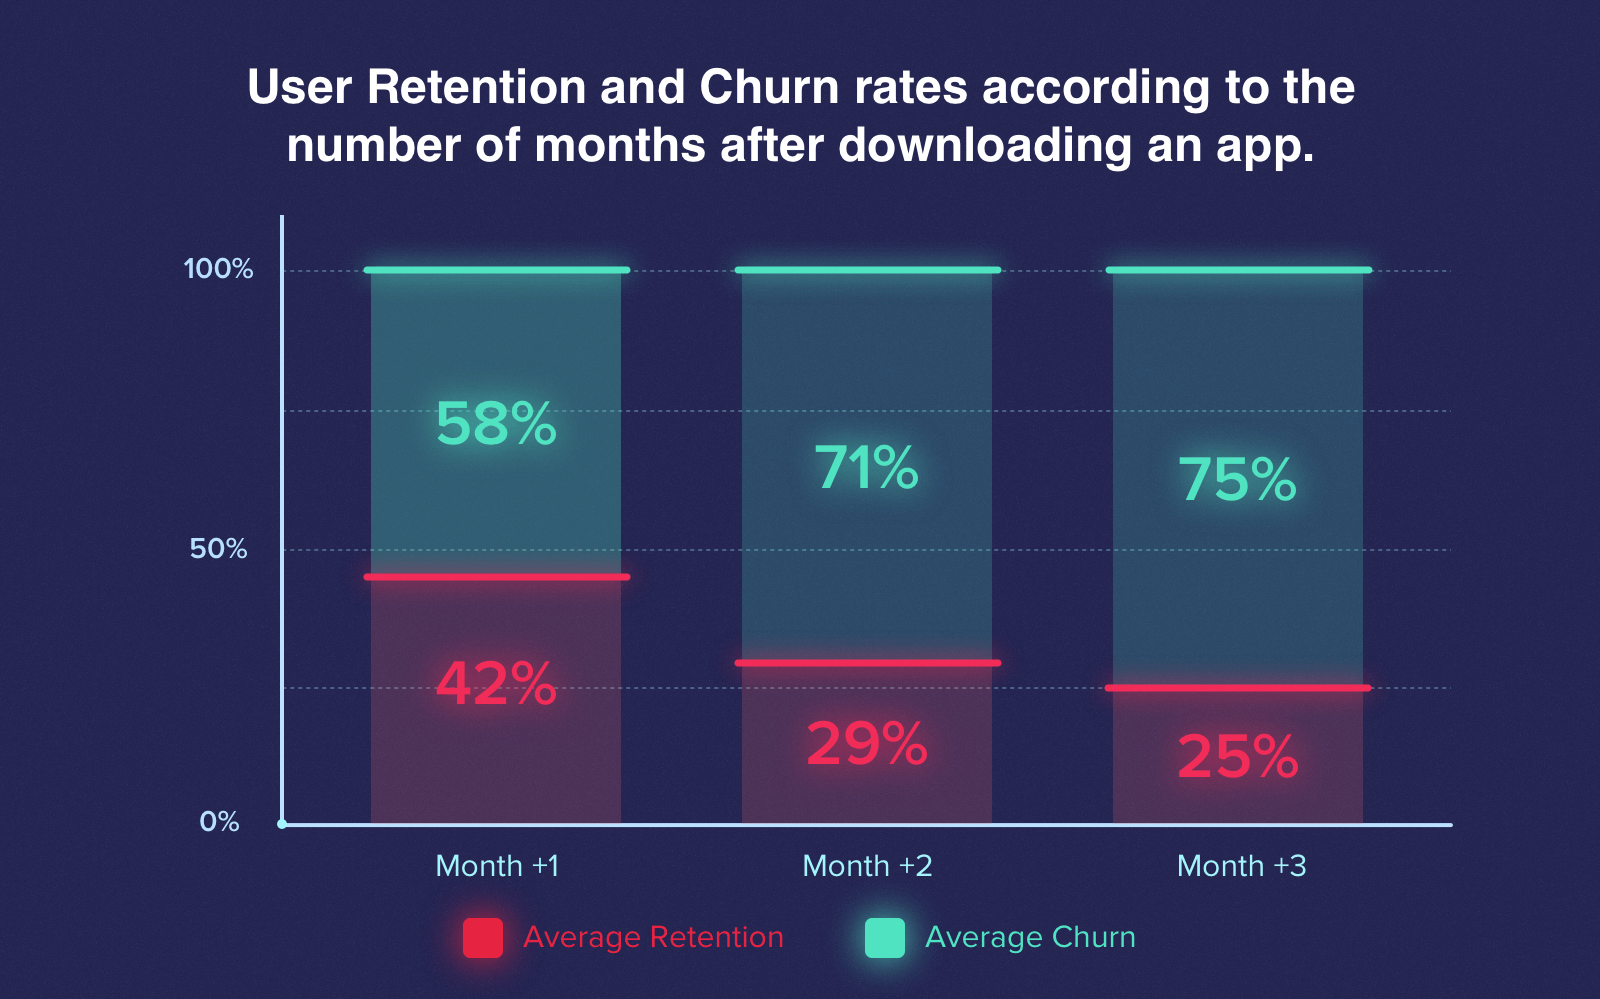 User retention and hurn rates depending on time after downloading an app